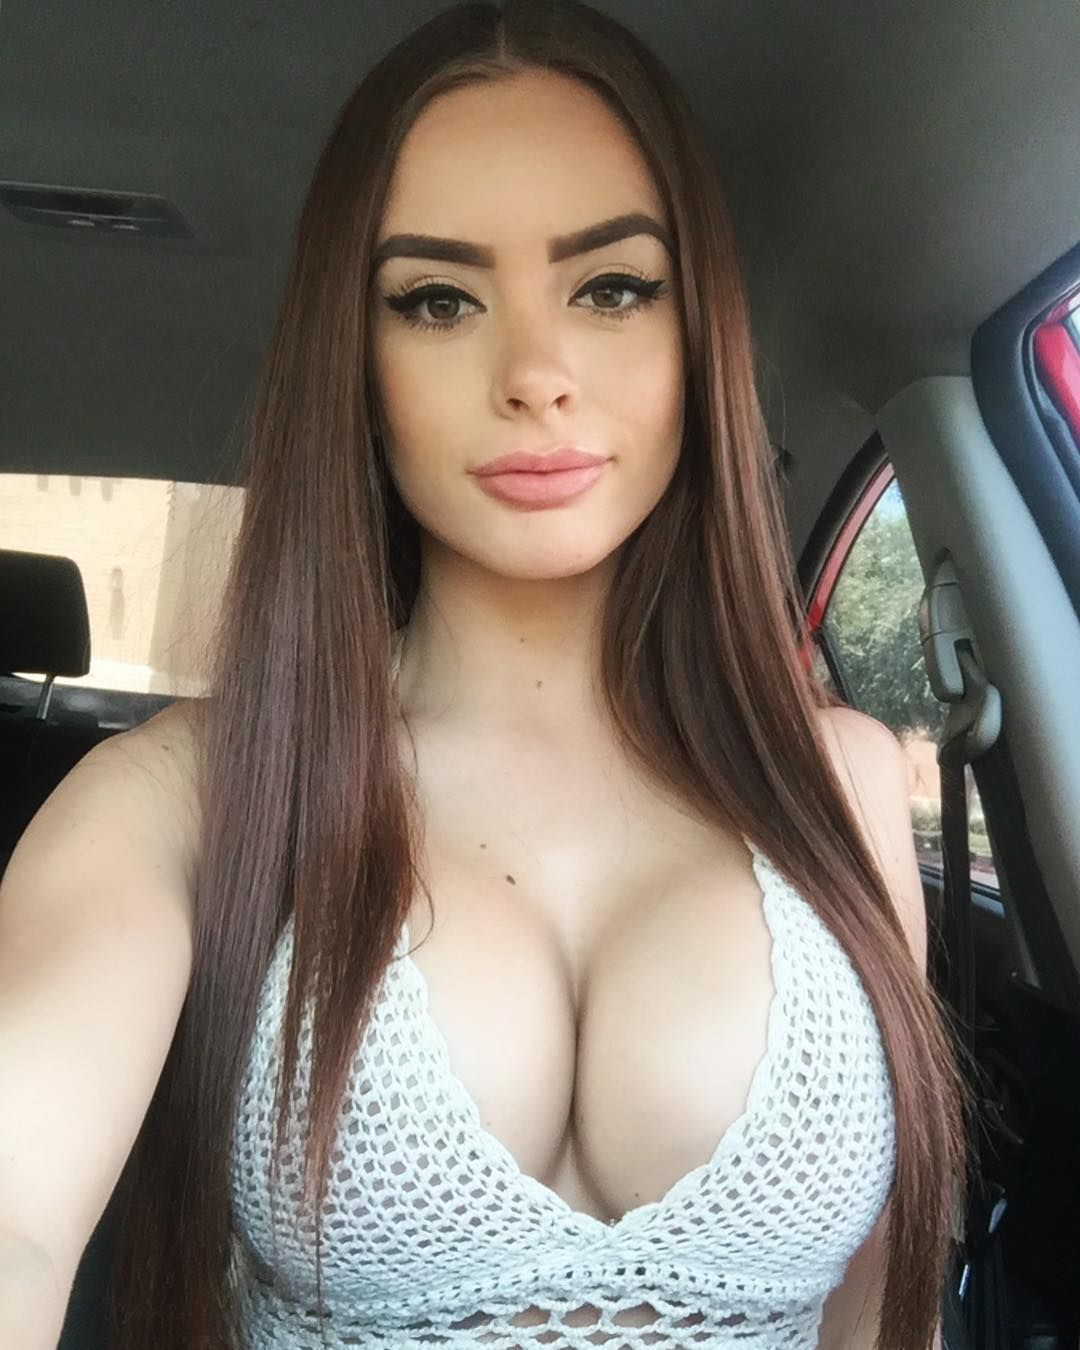 allison parker instagram